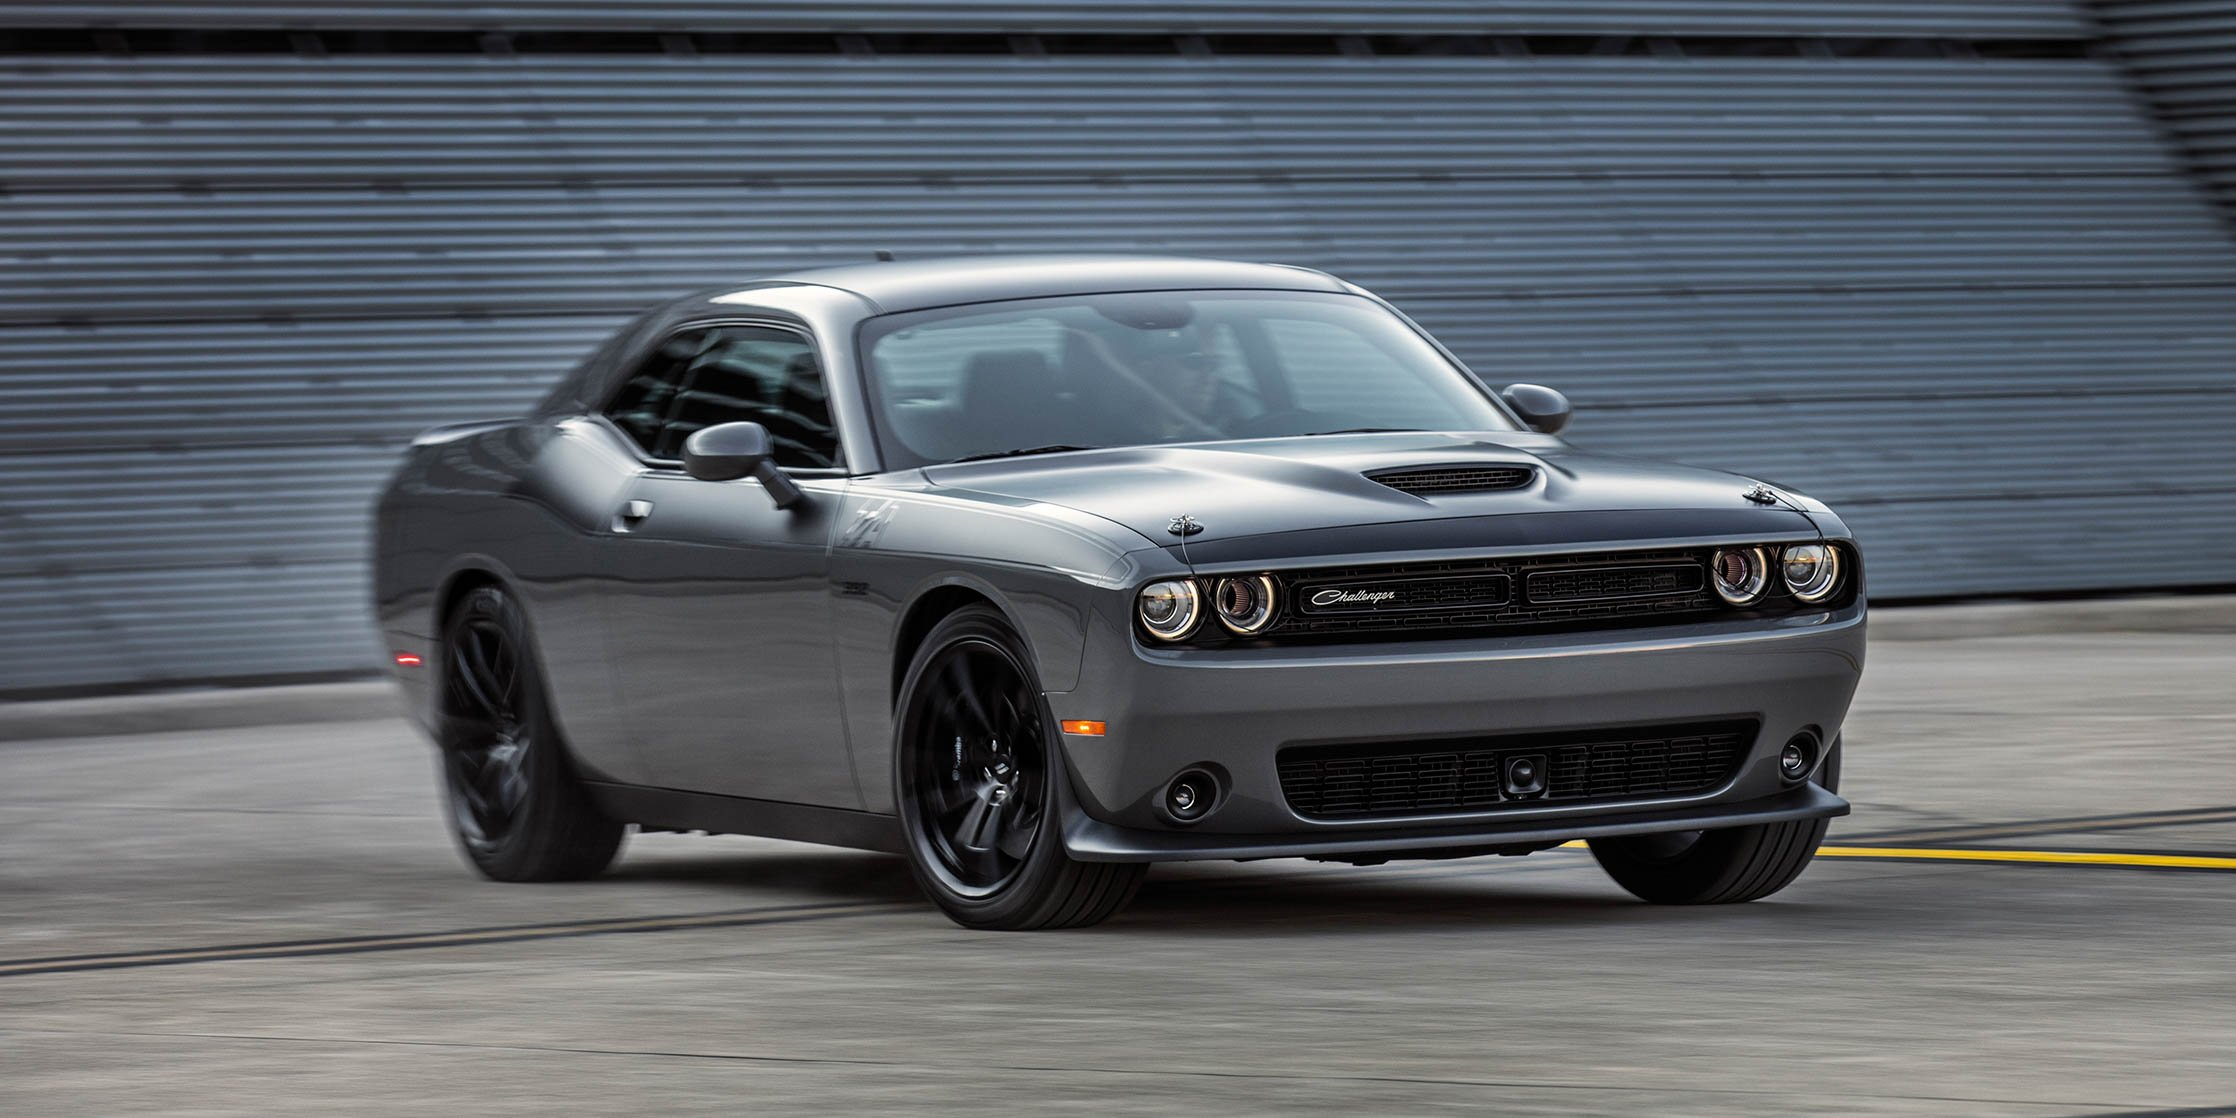 2017 dodge challenger t a charger daytona revealed iconic nameplates return photos 1 of 47. Black Bedroom Furniture Sets. Home Design Ideas